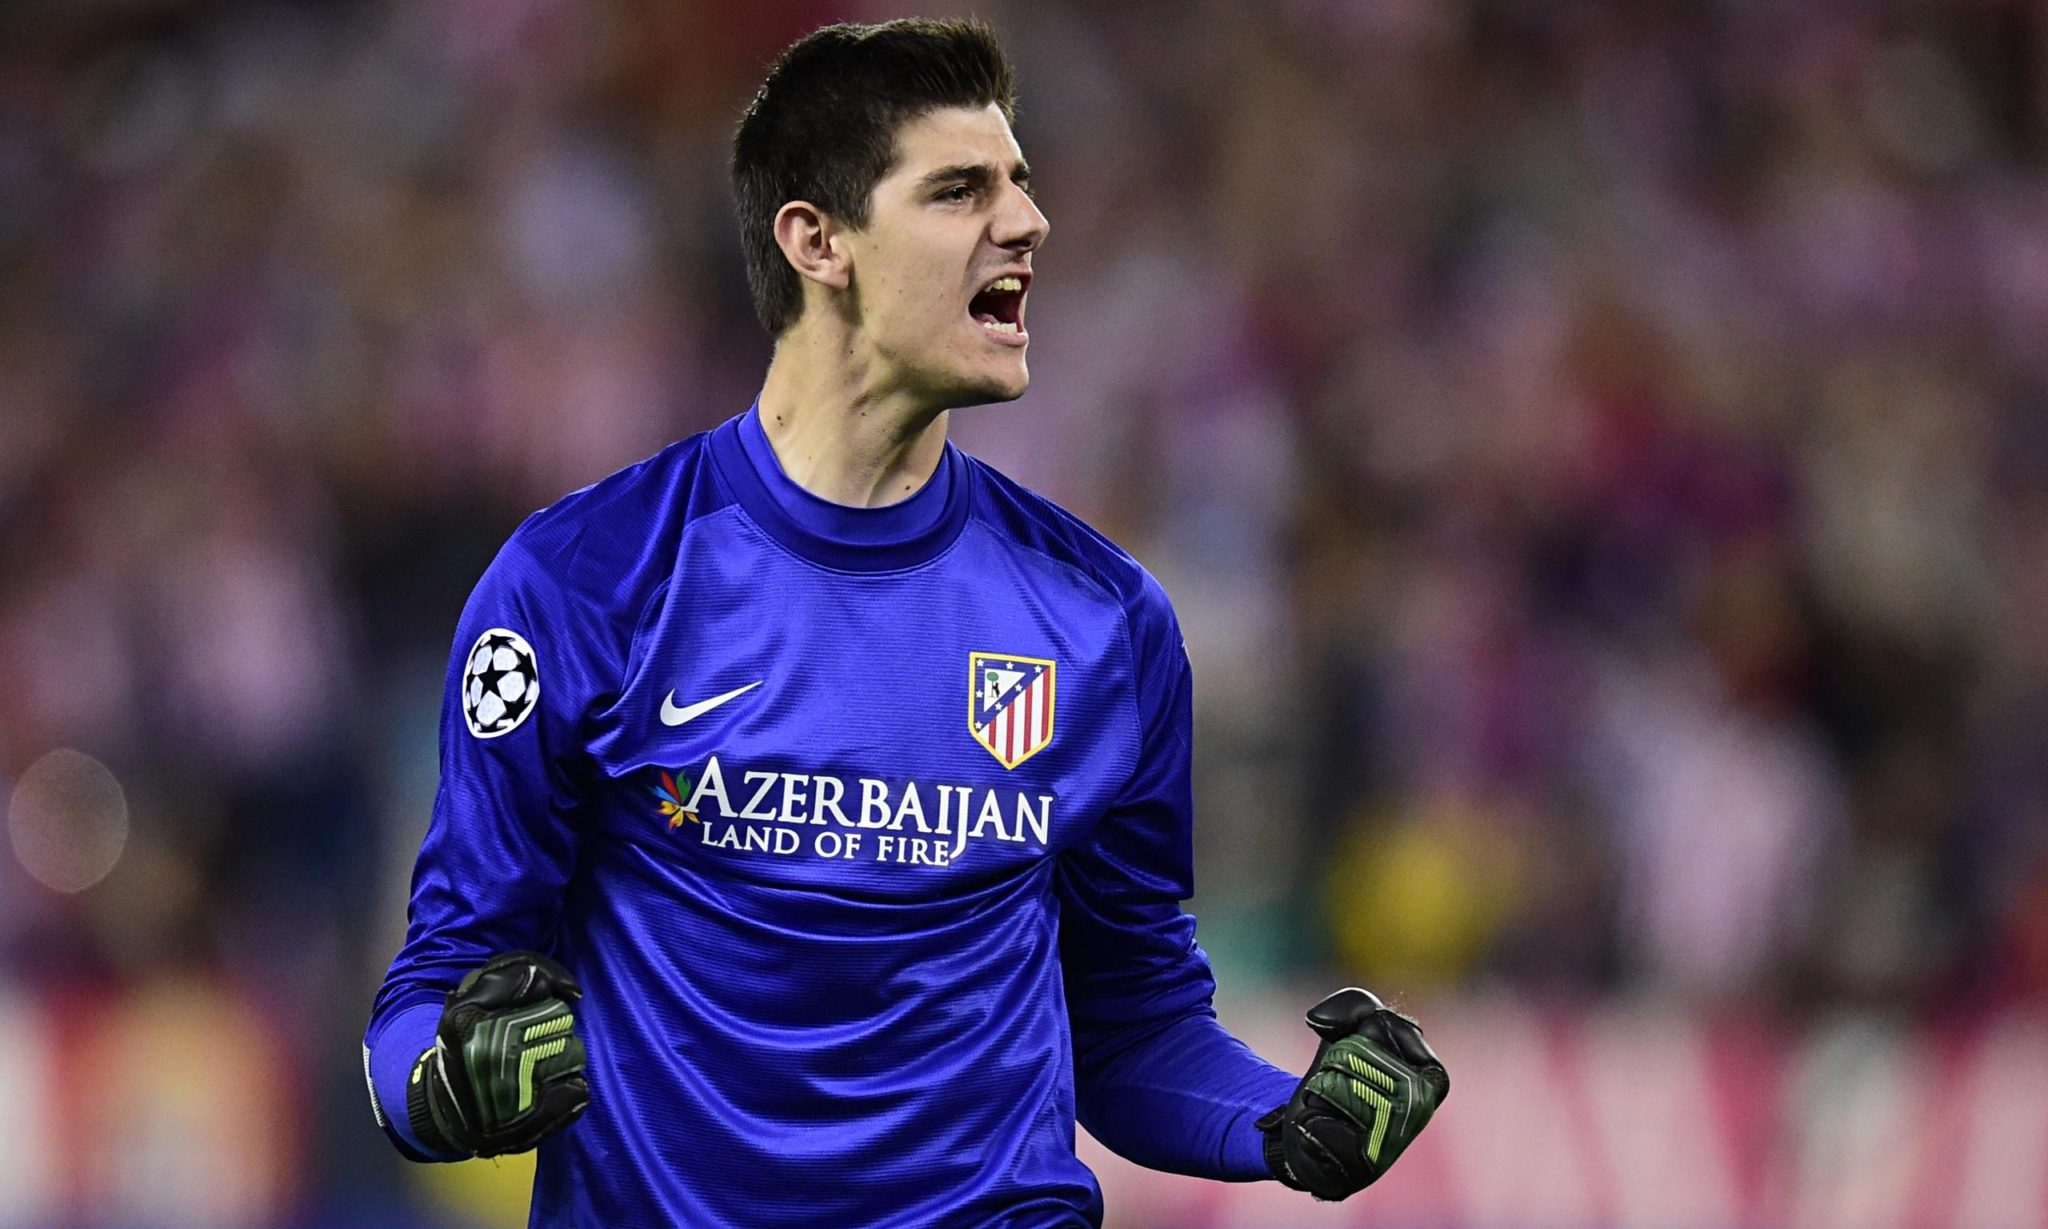 Thibaut Courtois was one of the best goalkeepers in the 2014.